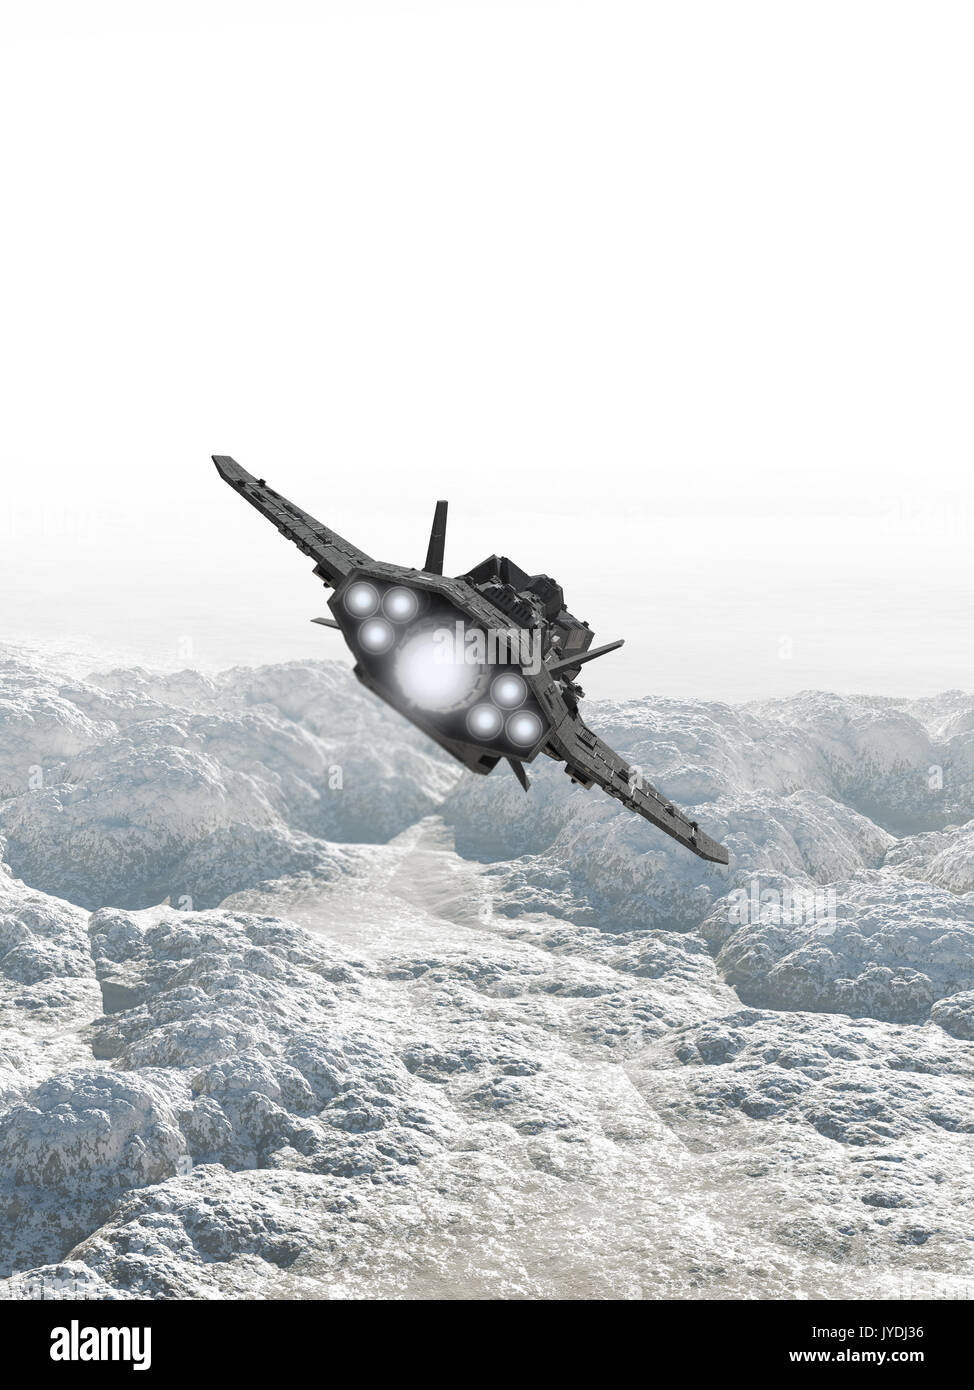 Interplanetary Spaceship Flying Over a Rocky Planet - Stock Image